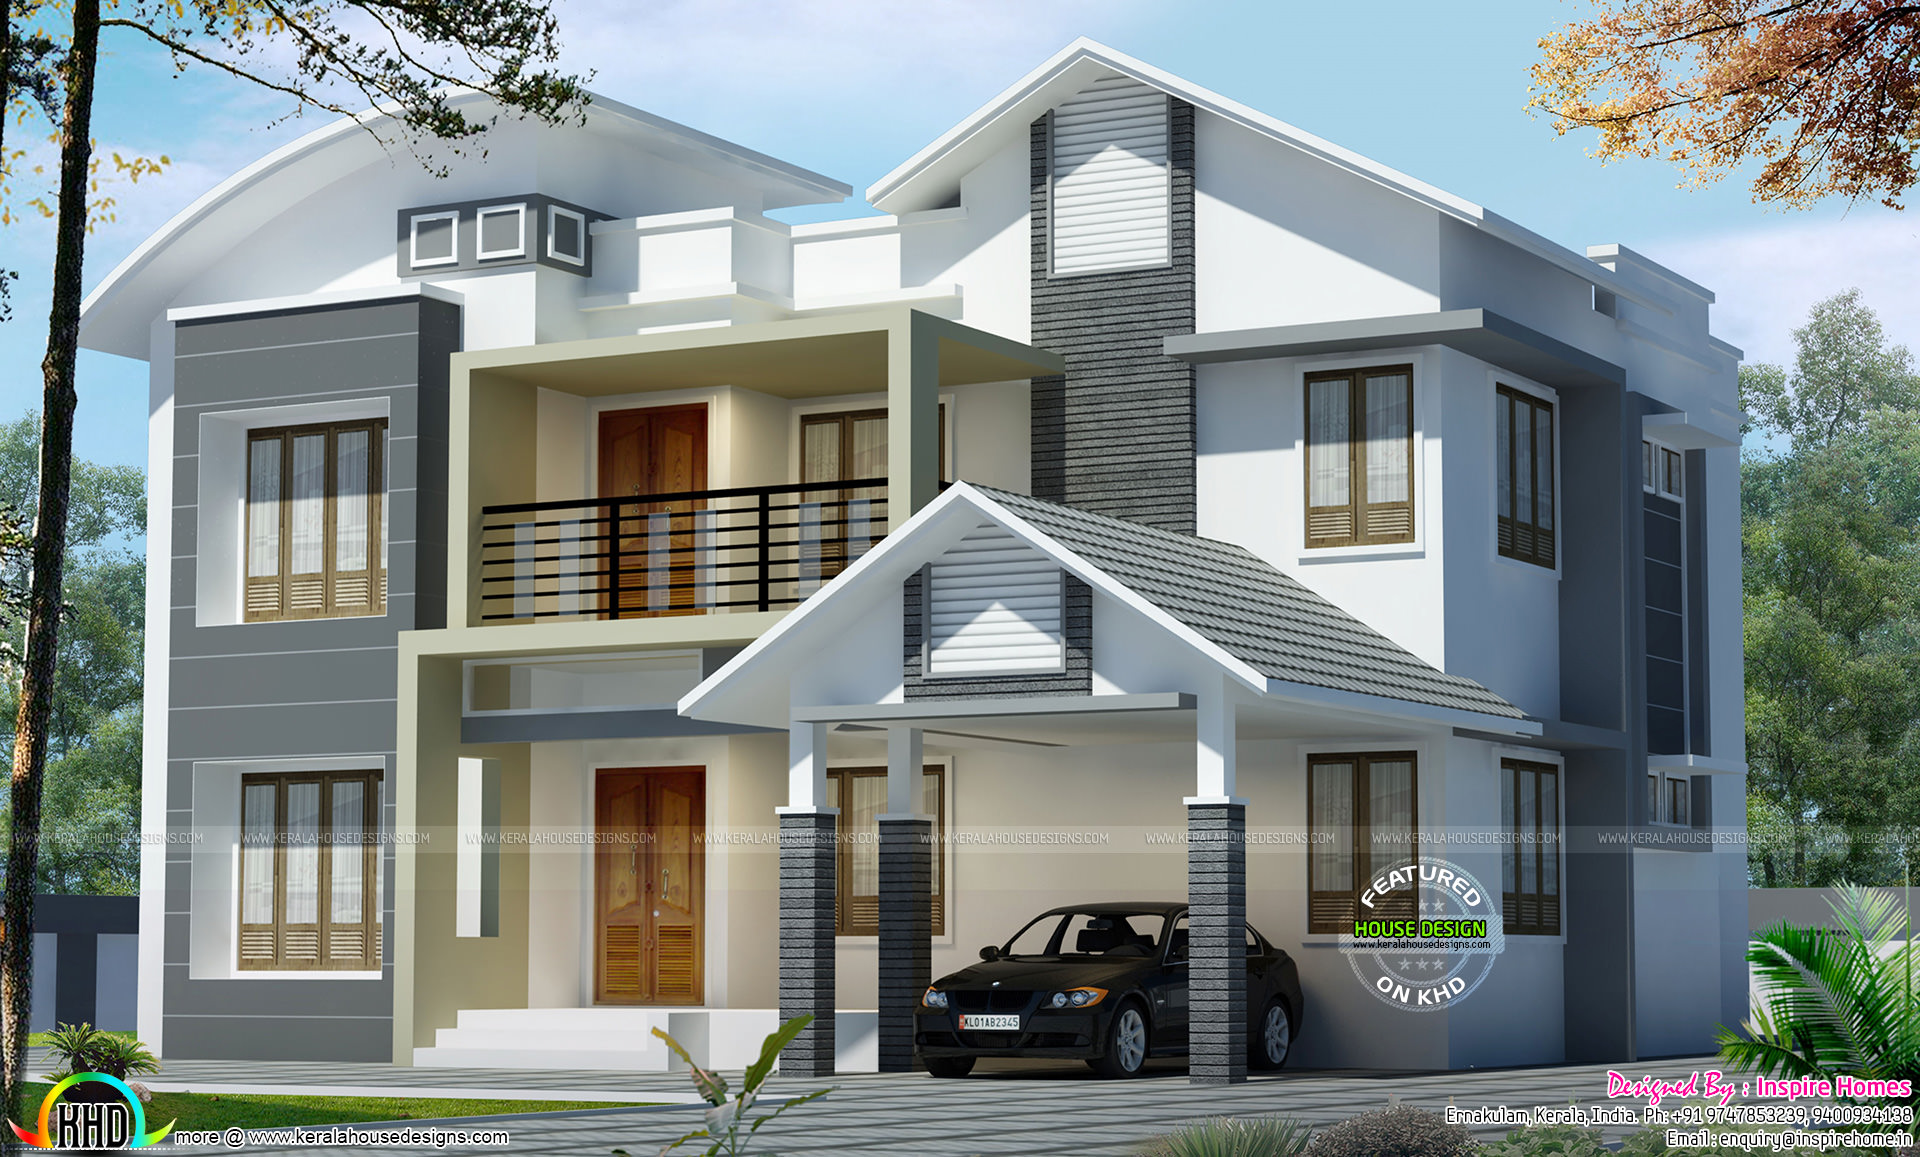 Modern House Plans Curved Roof - Front Design